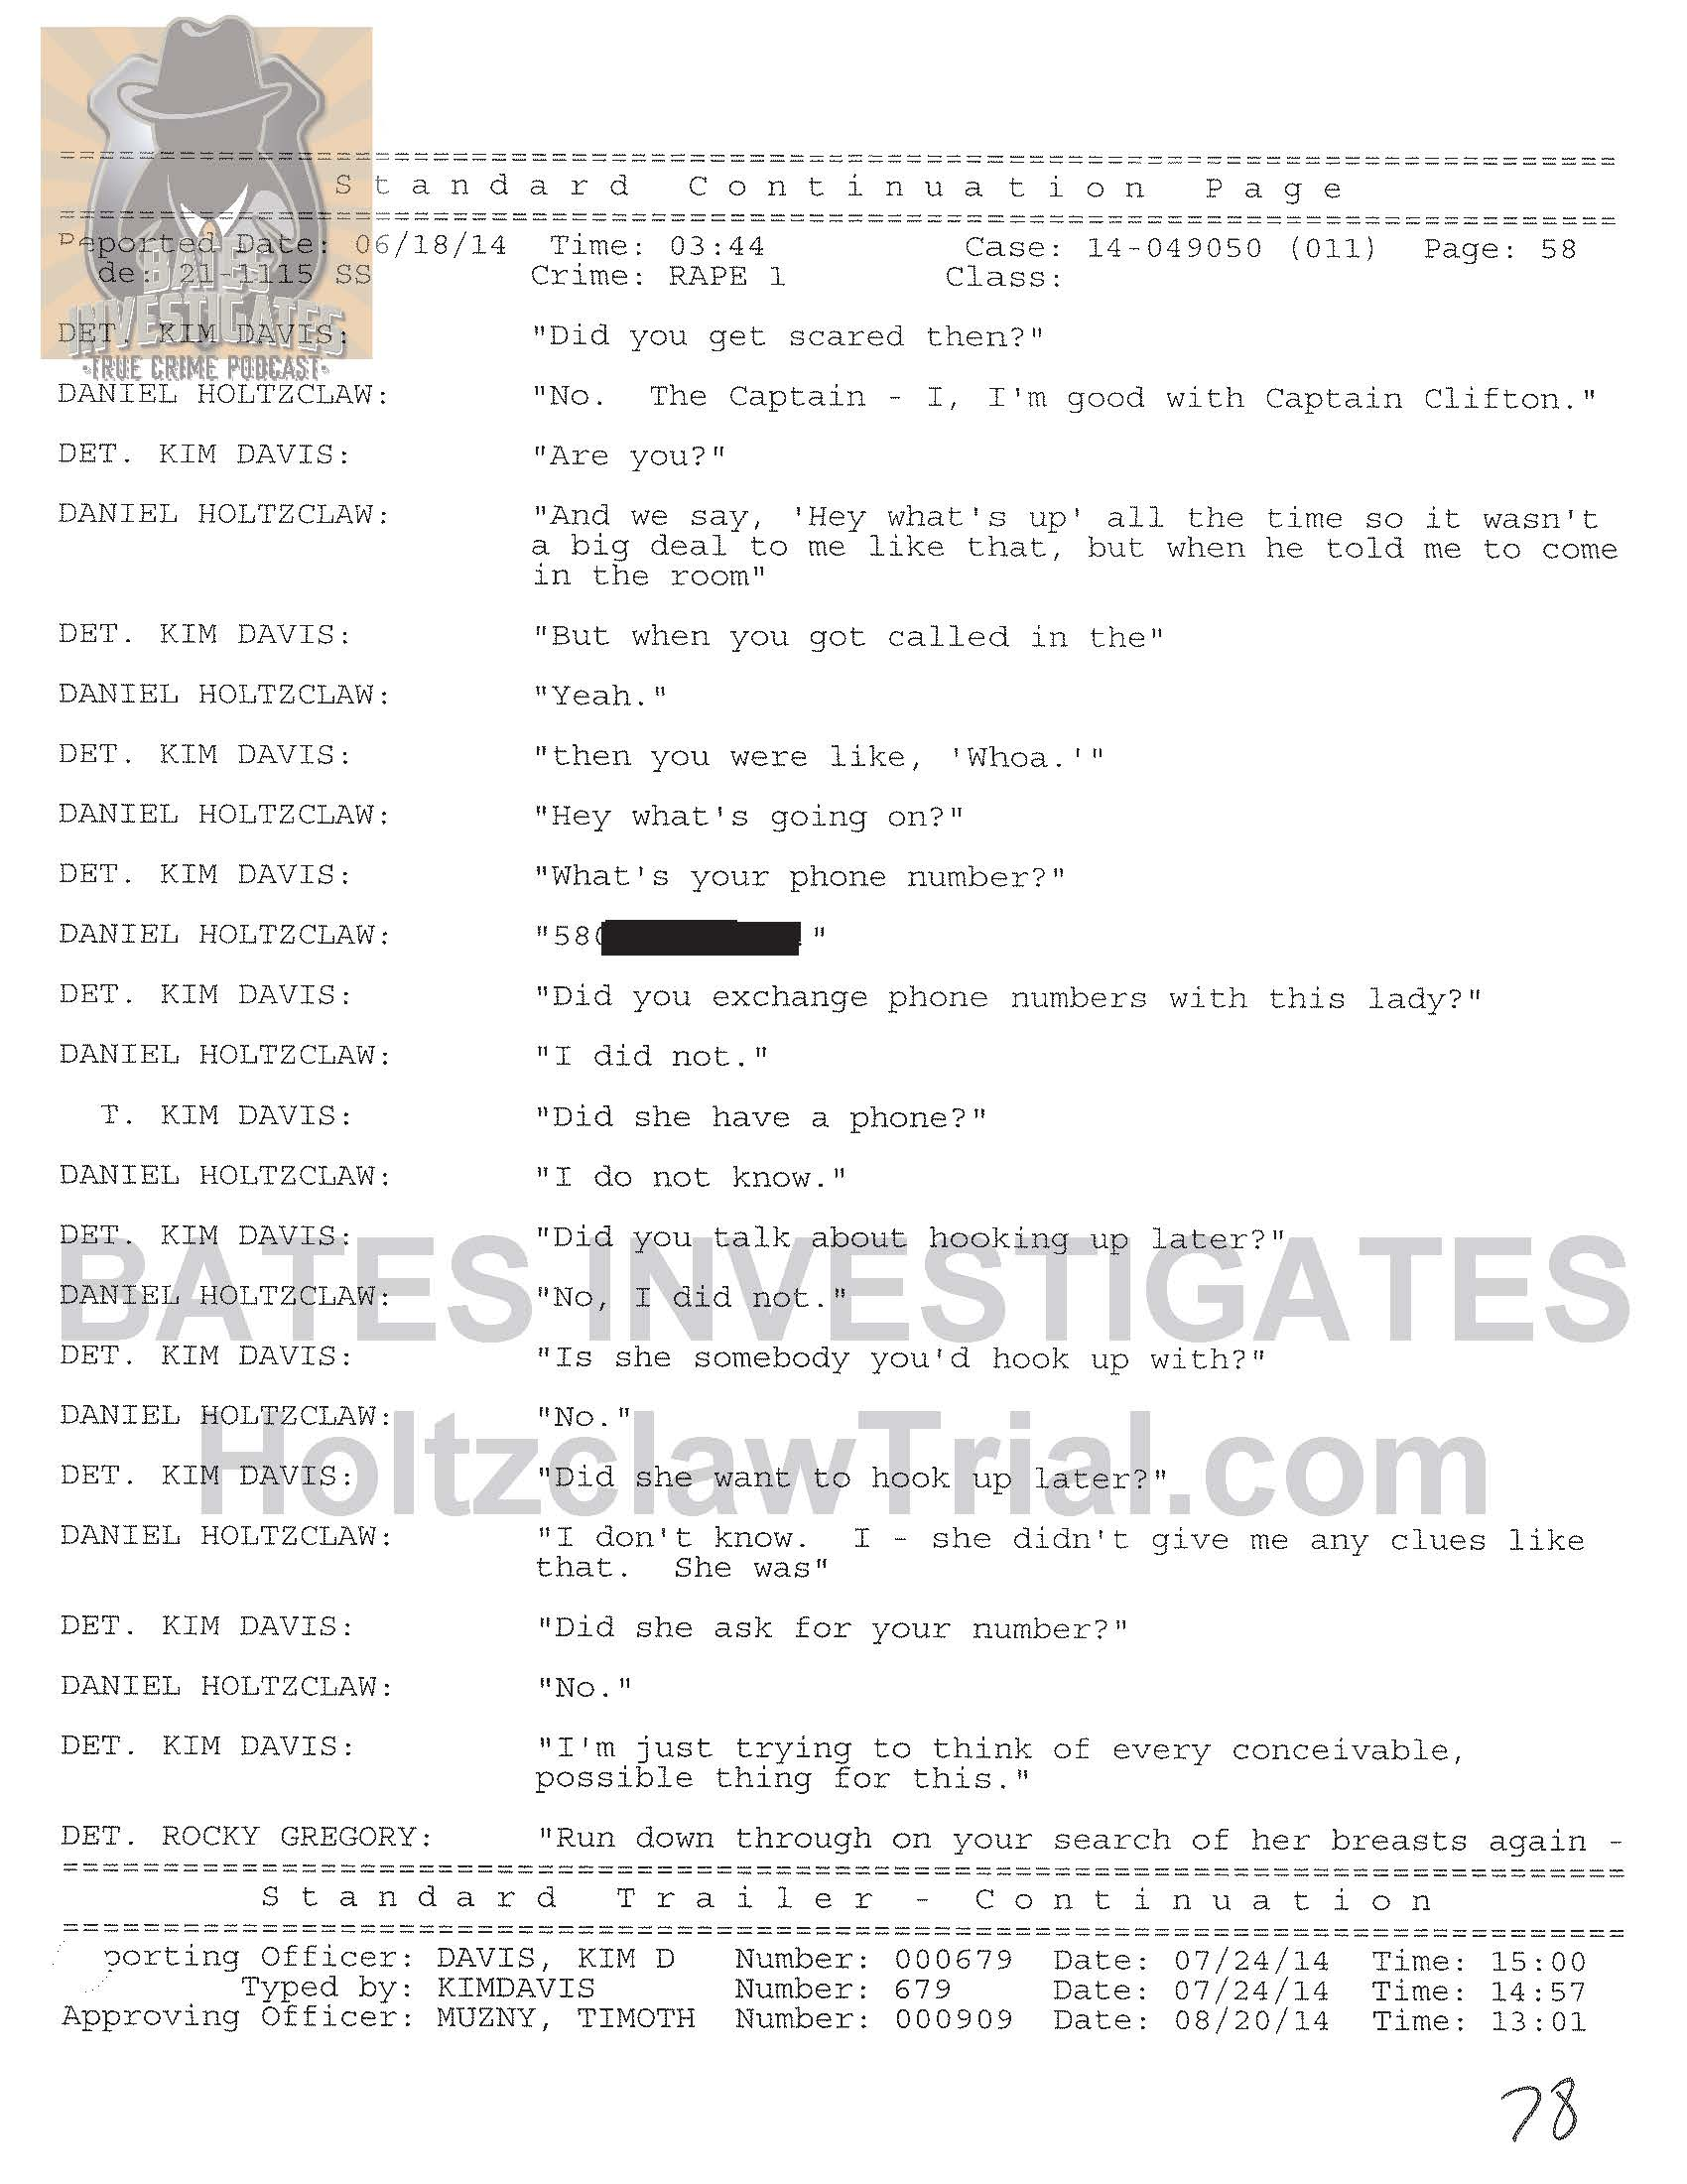 Holtzclaw Interrogation Transcript - Ep02 Redacted_Page_58.jpg